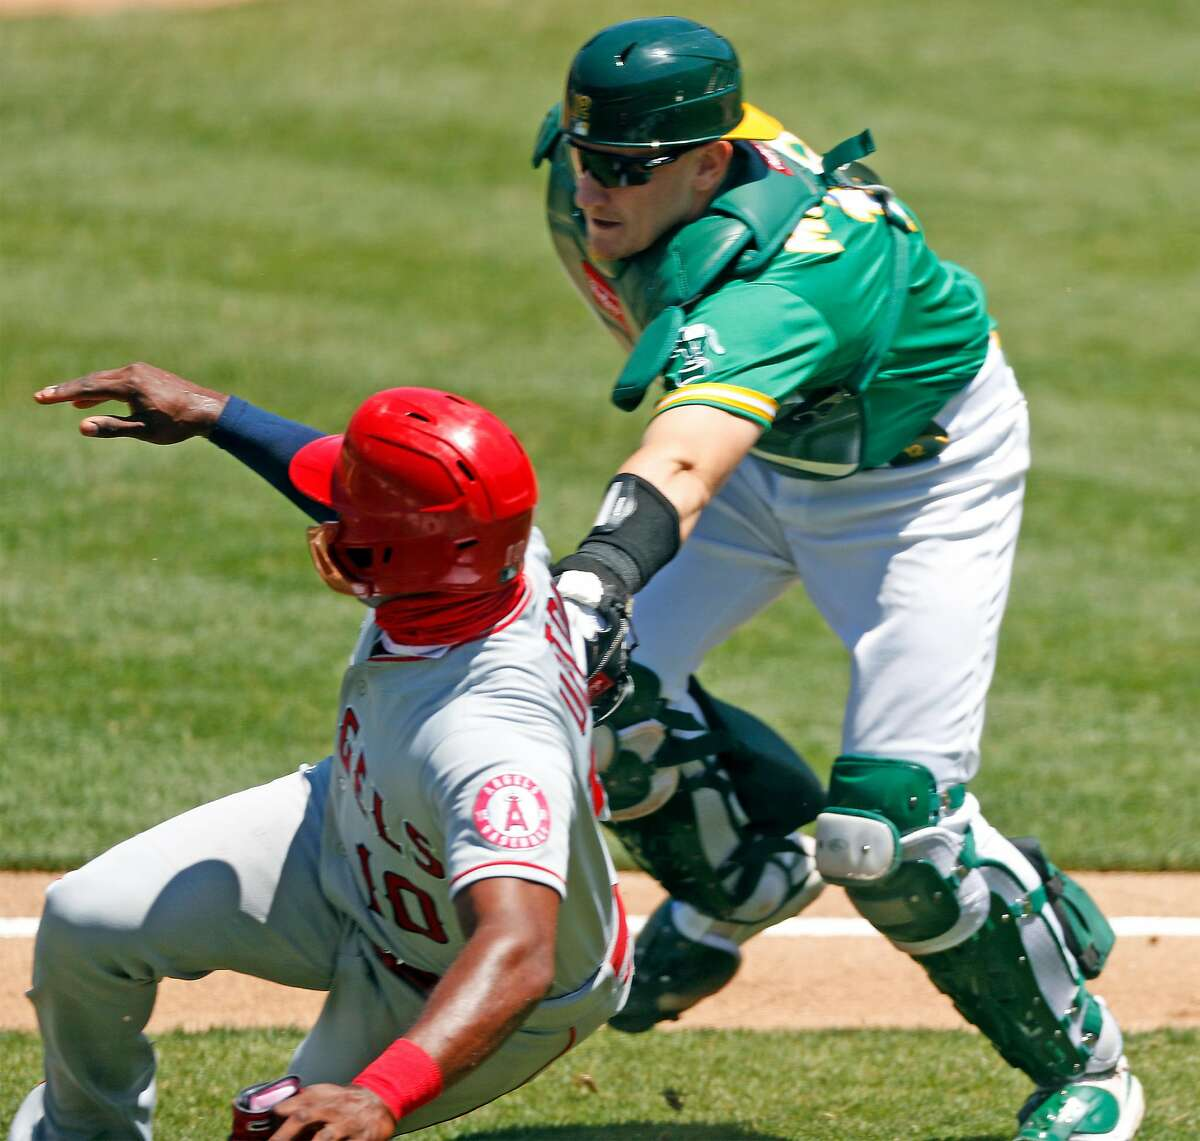 Oakland Athletics' Sean Murphy tags out Los Angeles Angels' Justin Upton during a rundown after a grounder by Albert Pujols in 4th inning during MLB game at Oakland Coliseum in Oakland, Calif., on Monday, July 27, 2020.